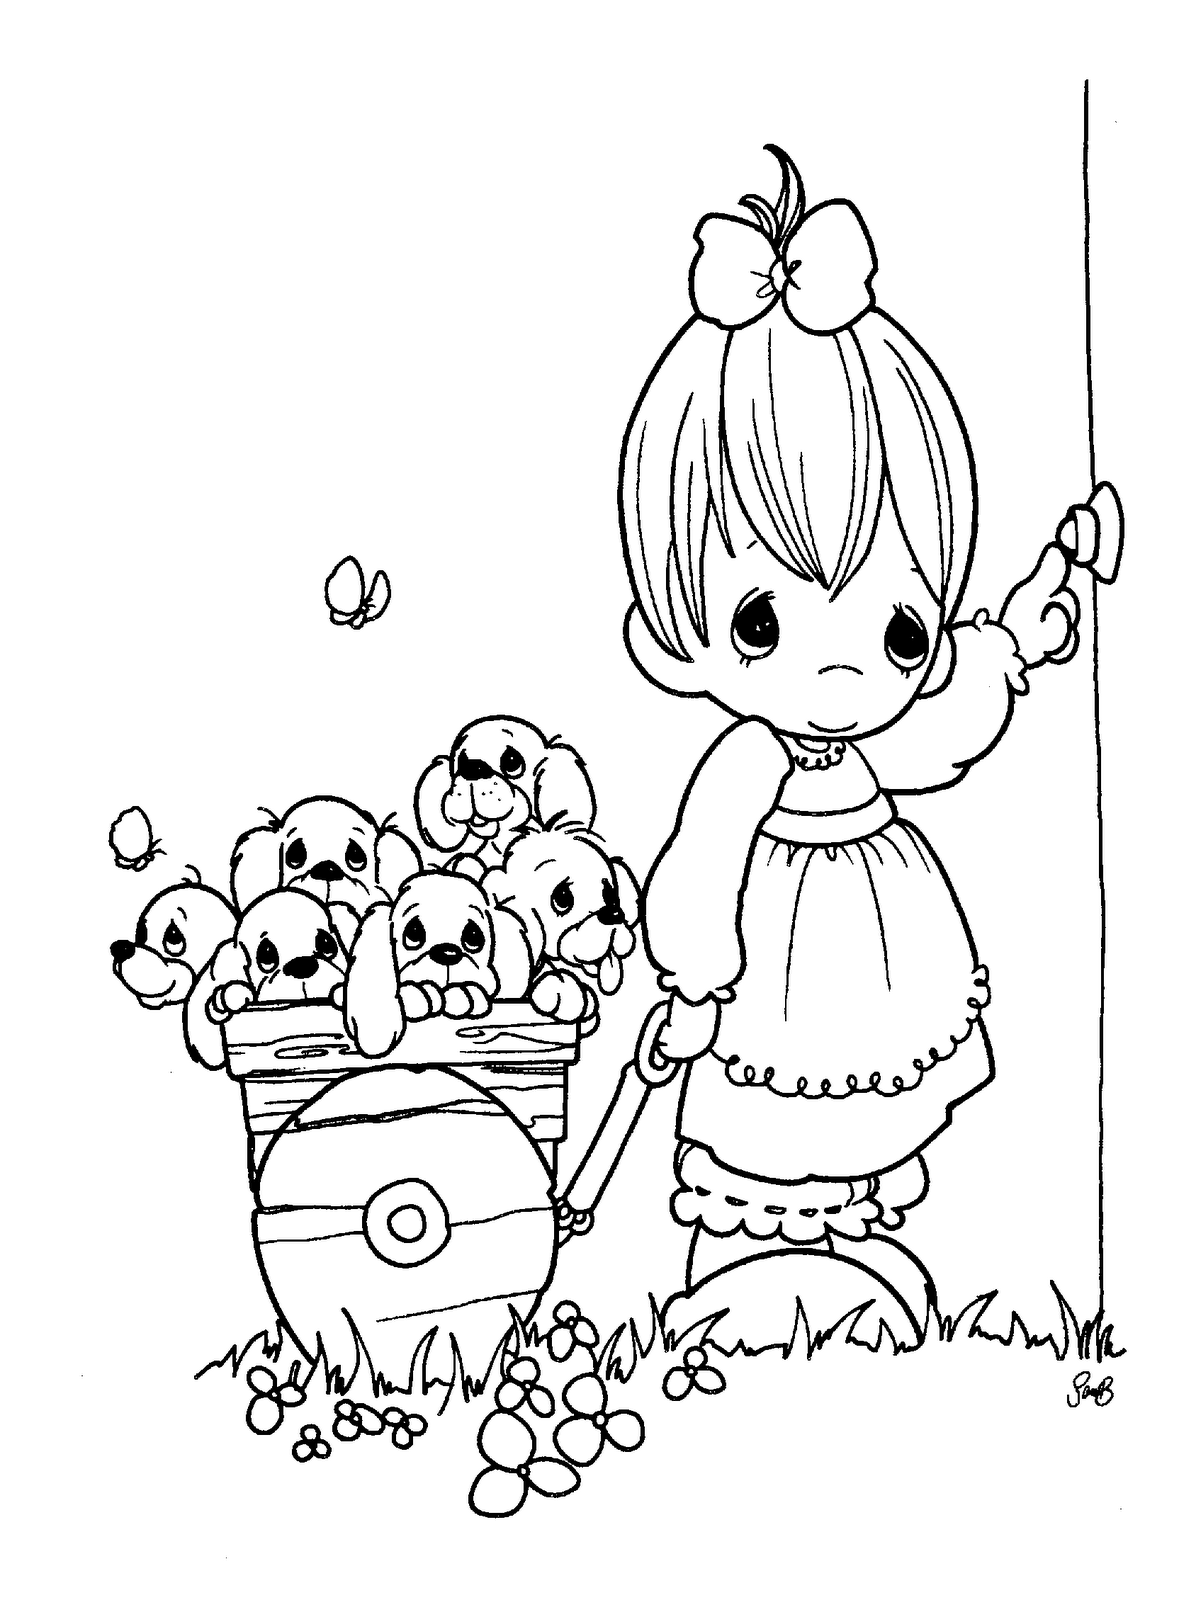 precious moments birthday coloring page - Bing Images | presious ...